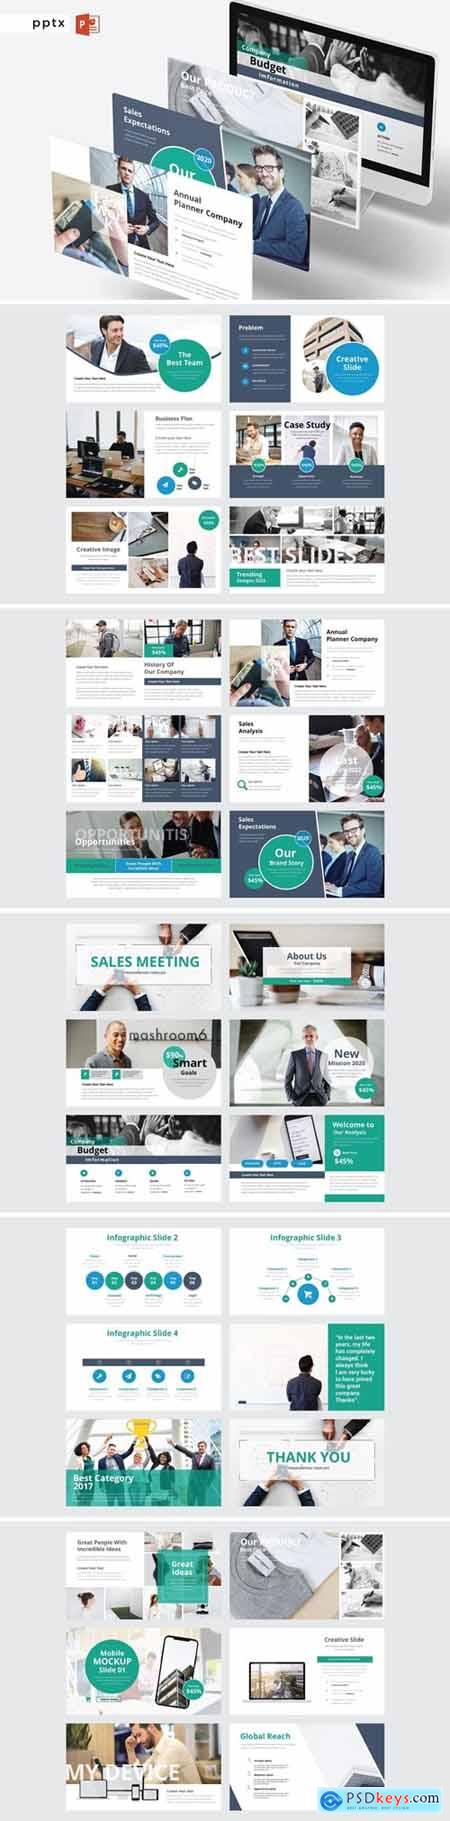 SALES MEETING Powerpoint, Keynote and Google Slides Templates